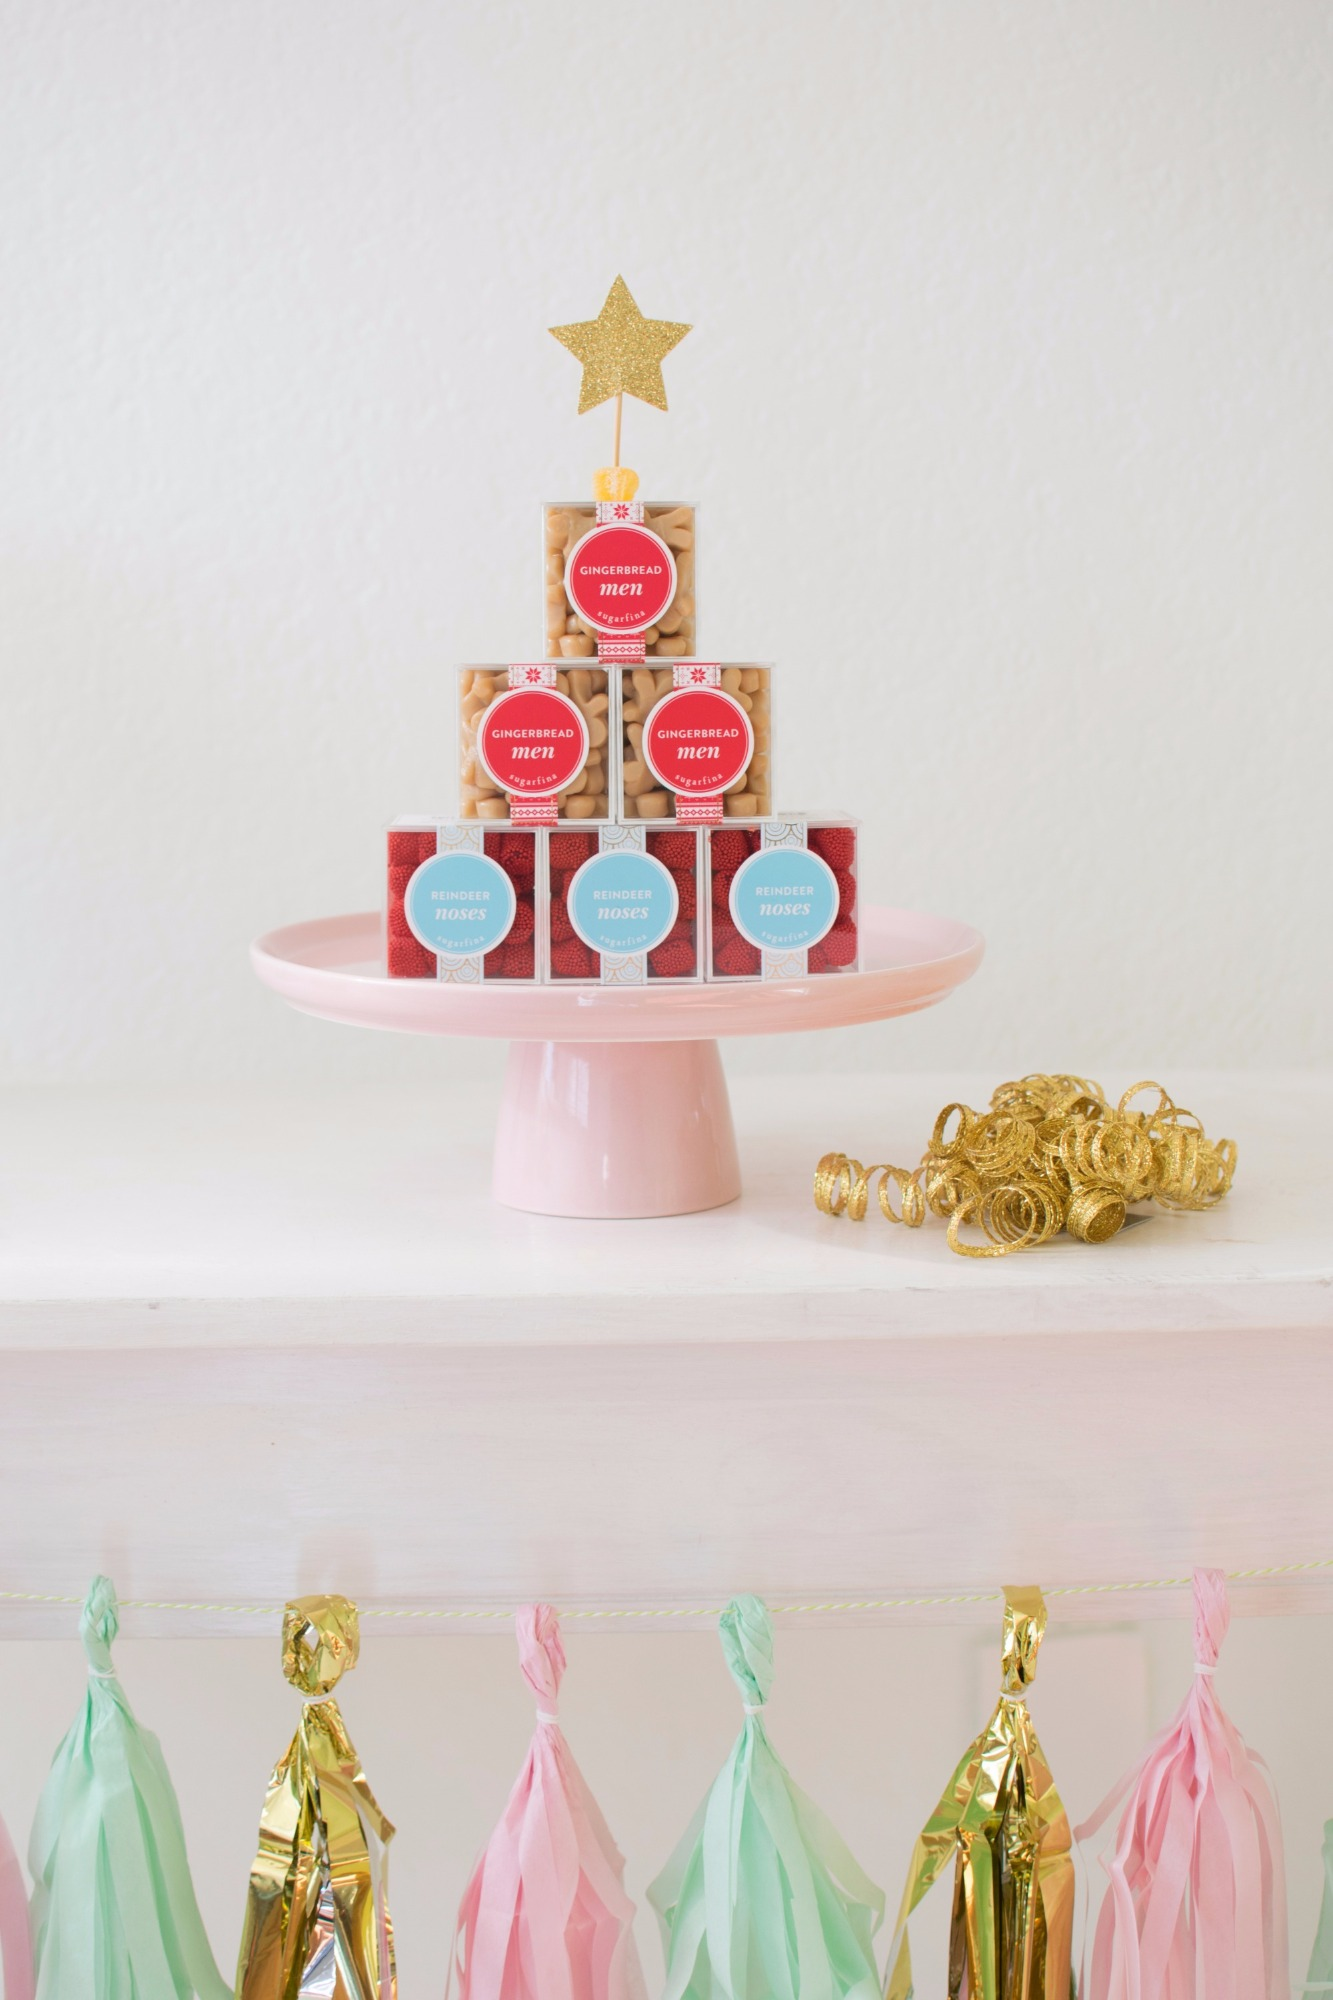 Sugarfina Candy from Holiday Cookie Decorating Party by Twinkle Twinkle Little Party | Black Twine